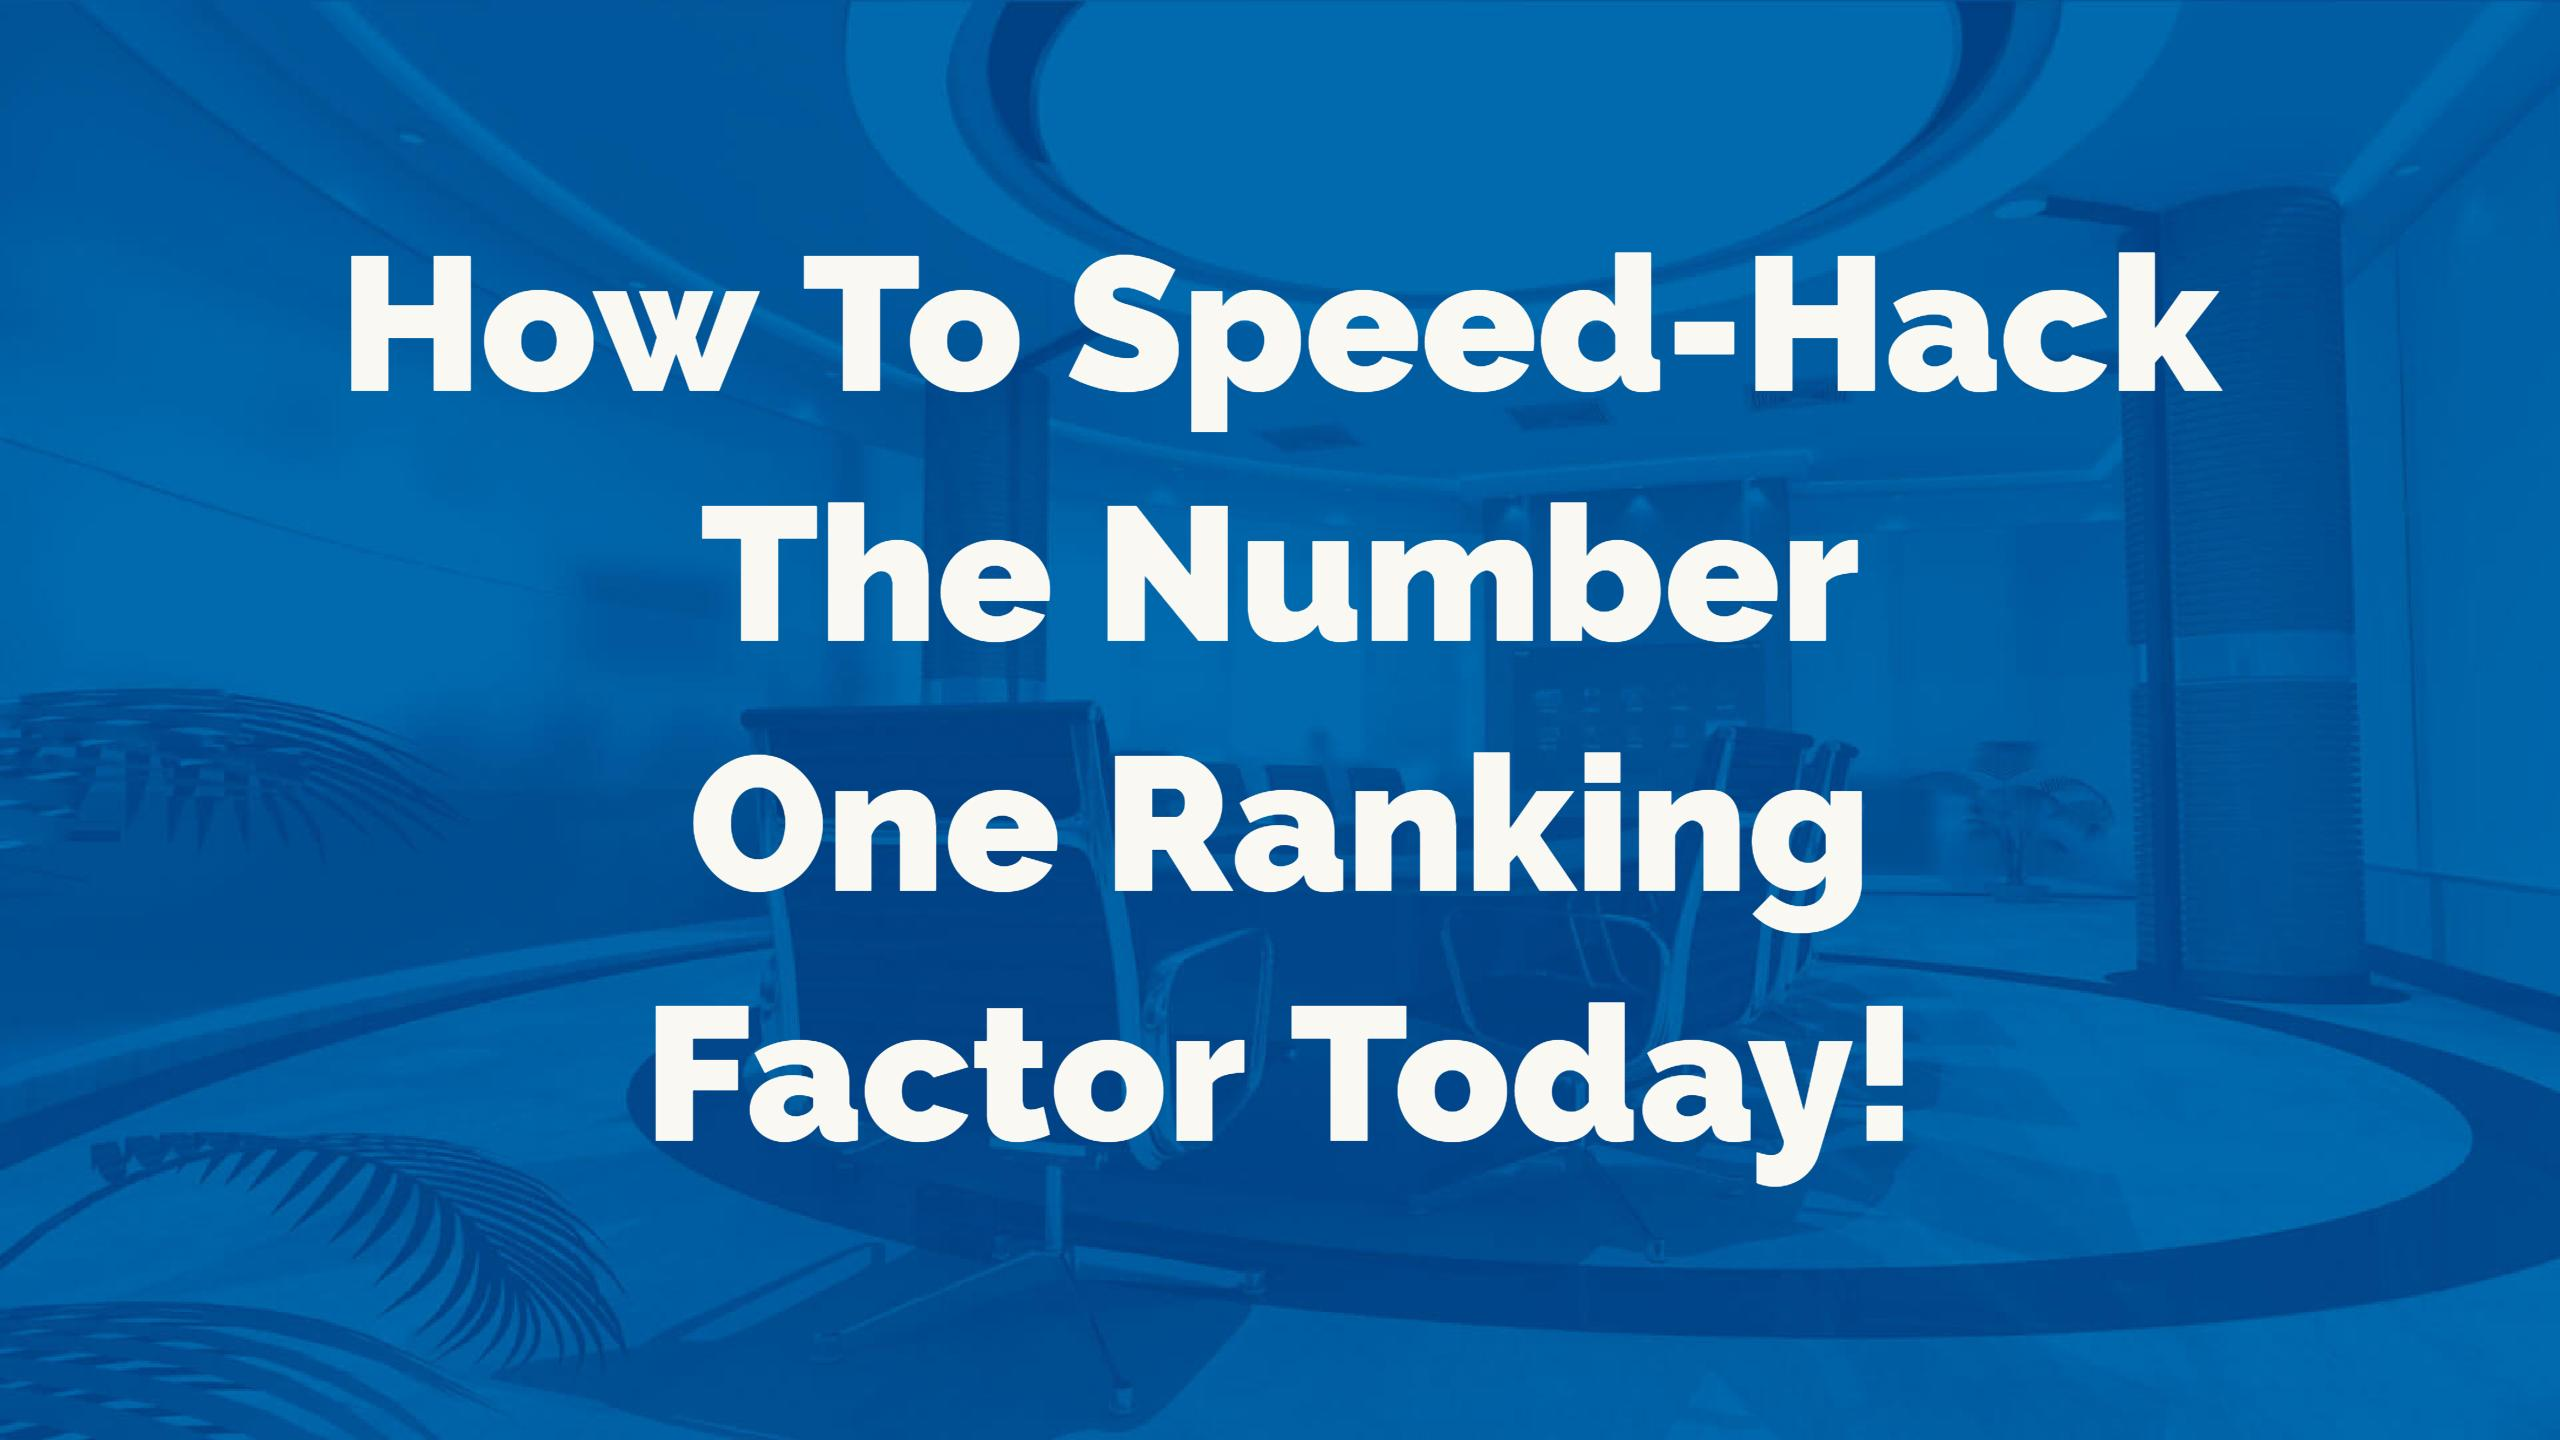 Number One Ranking Factor Today